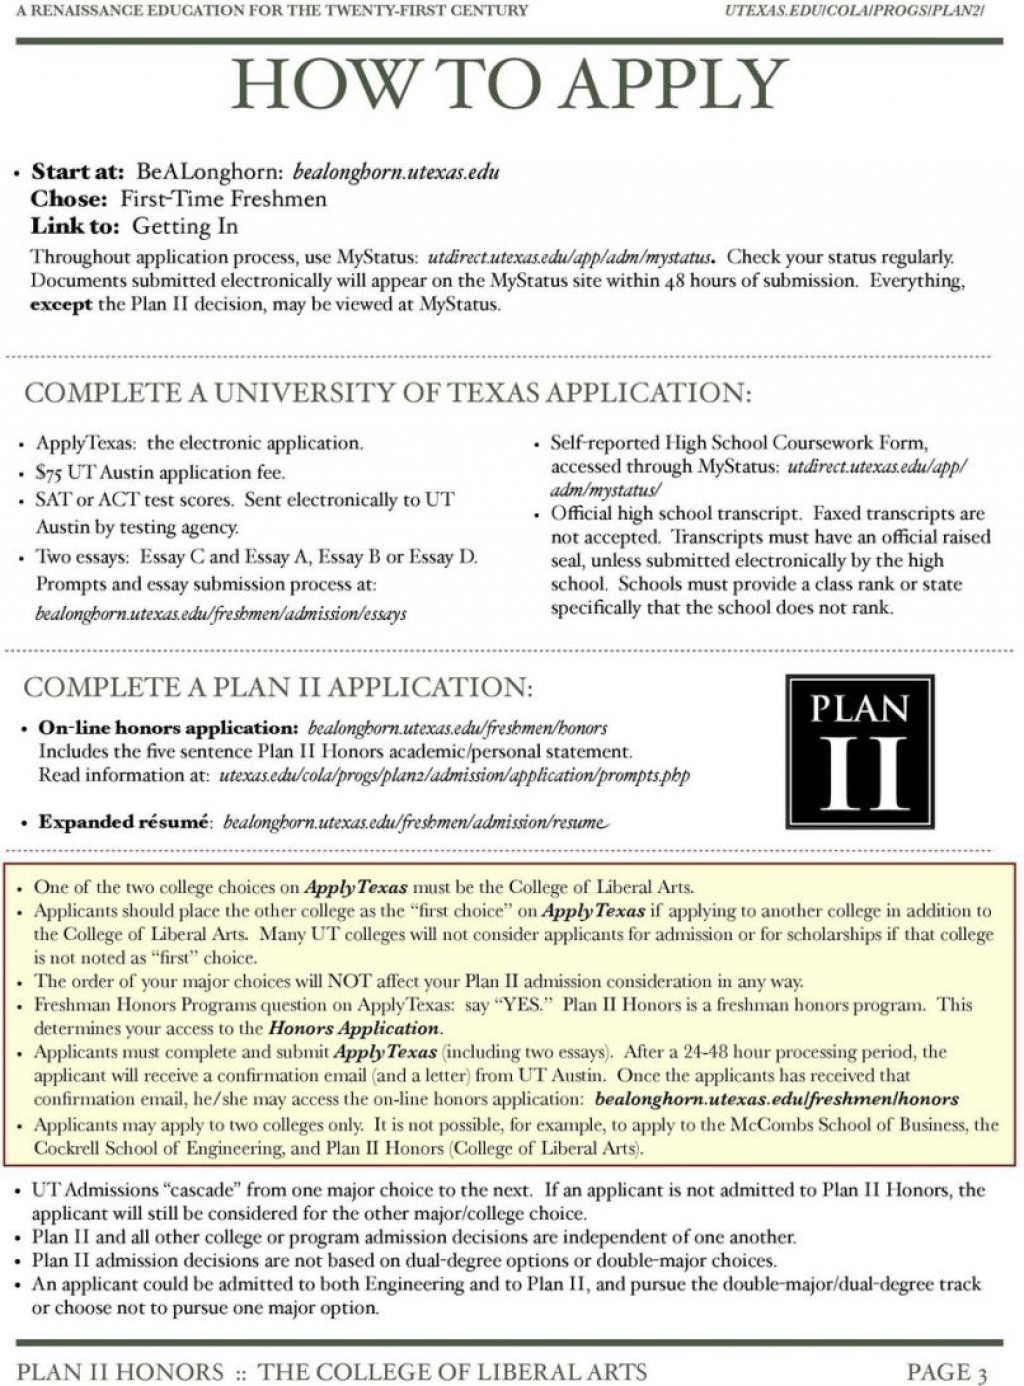 004 Essay Example Applytexas Prompts Poemdoc Or Apply Texas Topic Examples P Top Essays Word Limit 2016 2019 Large